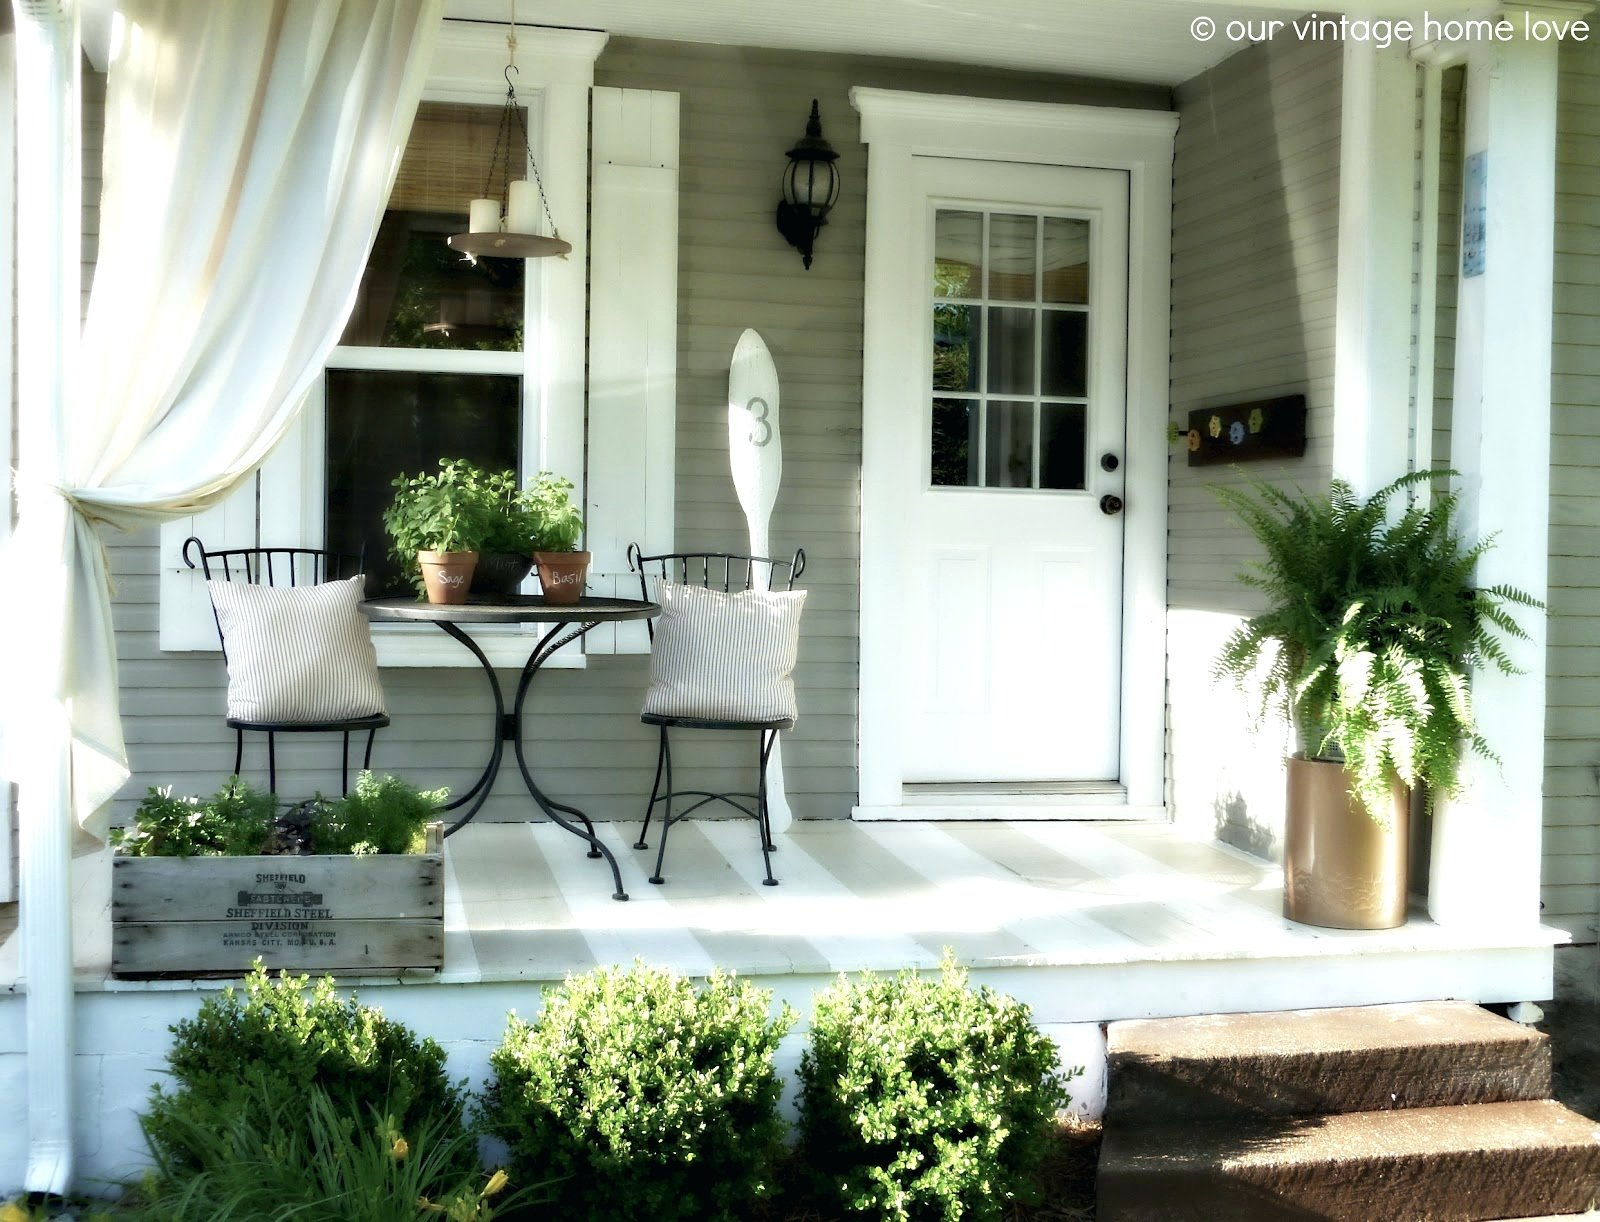 10 Spectacular Small Front Porch Ideas Pictures patio ideas front patio design ideas small front porch ideas small 2020